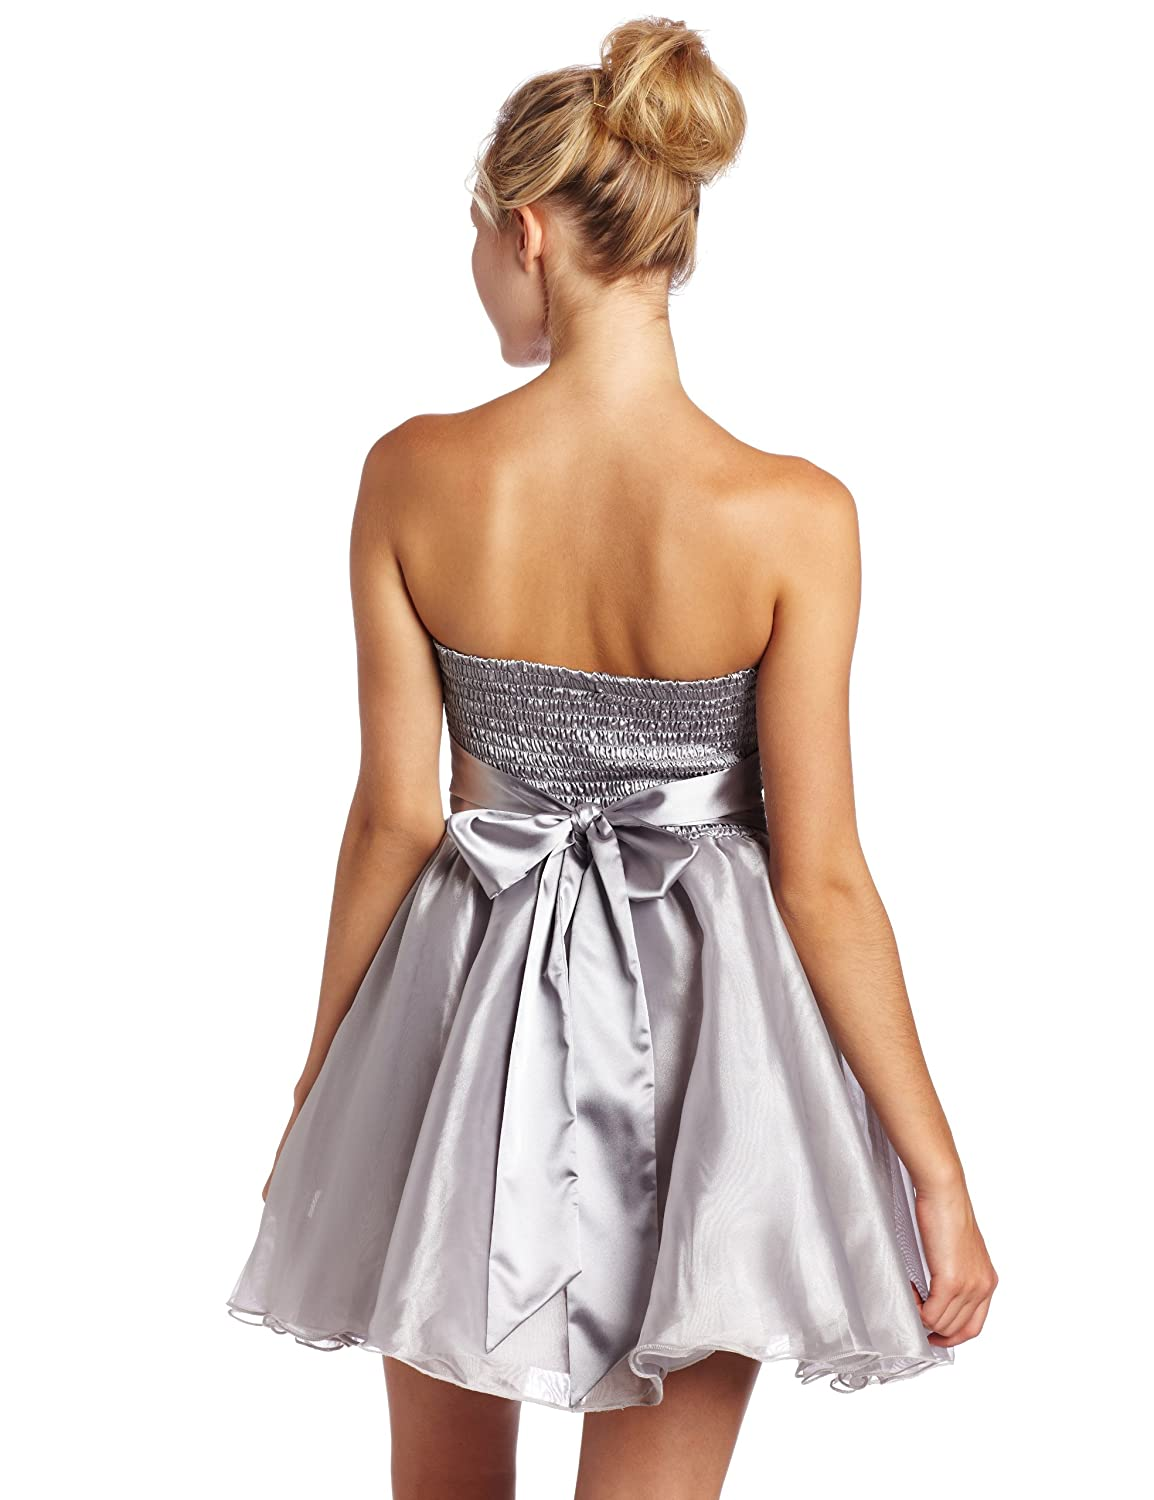 best supplier official images perfect quality Amazon.com: XOXO Juniors Strapless Party Dress with Bow ...